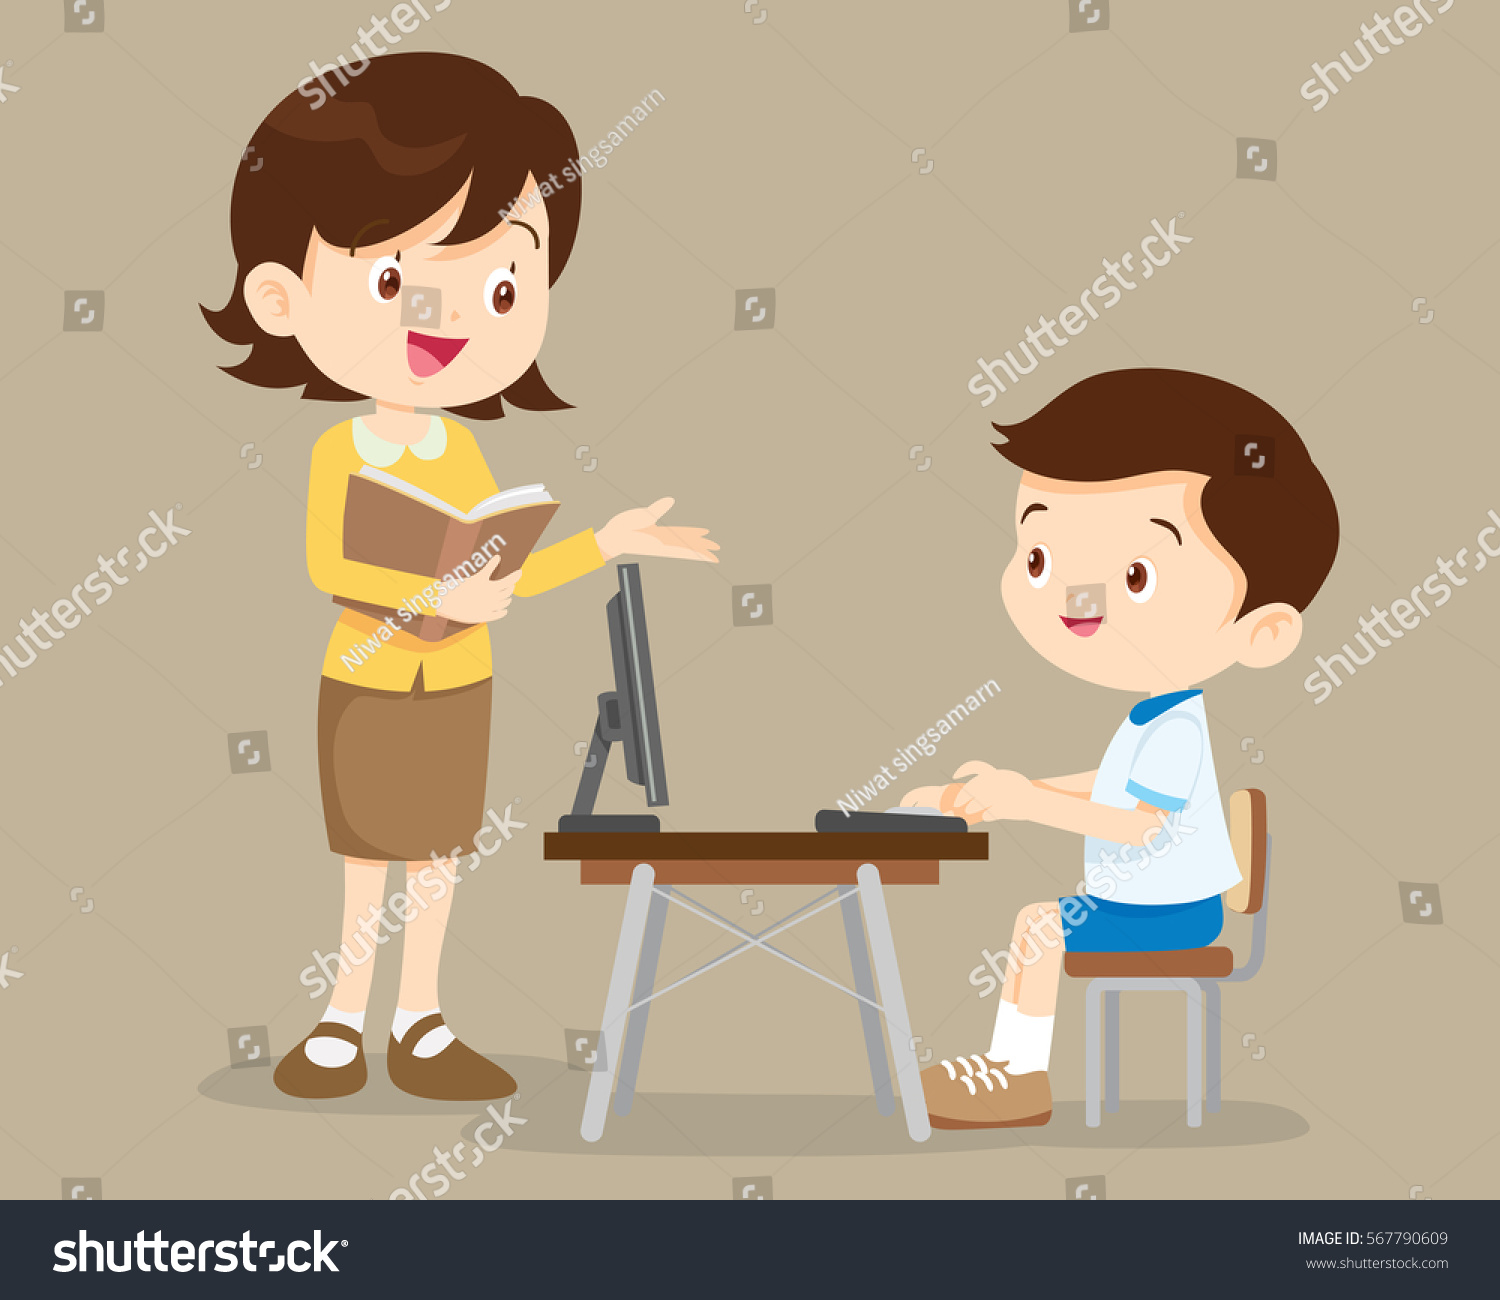 teacher student boy learning computer stock vector (royalty free